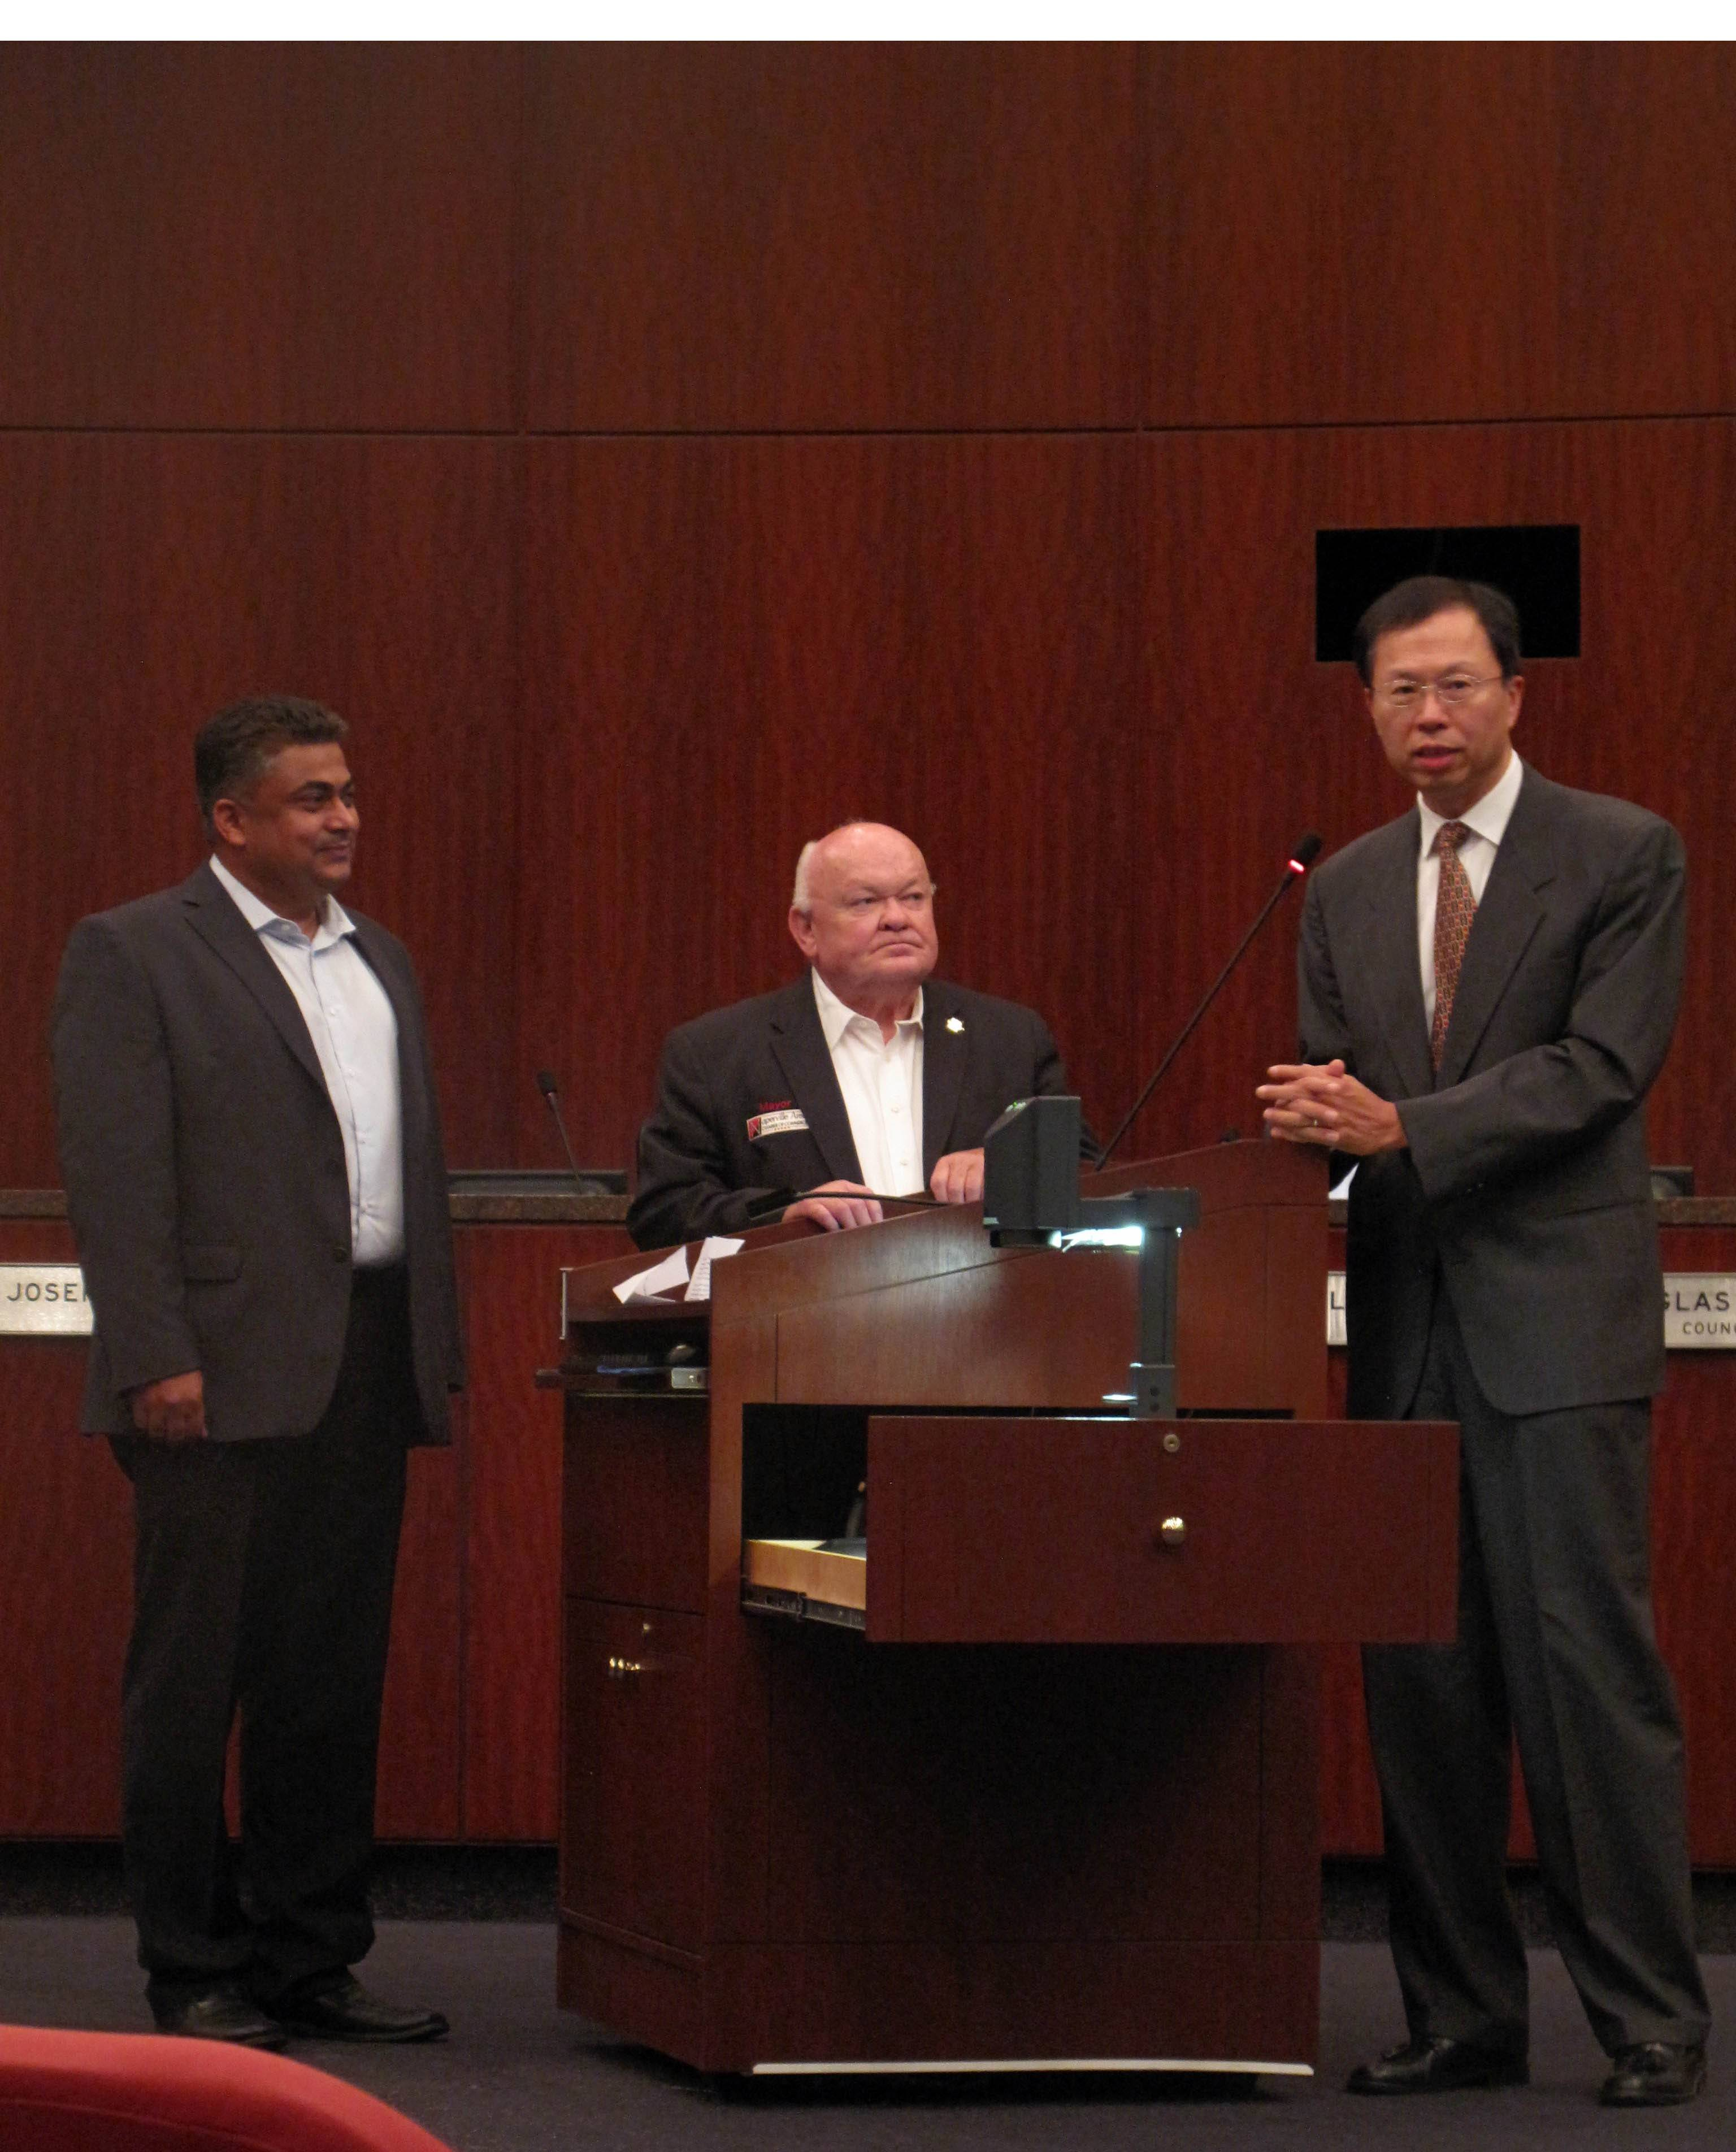 Naperville, Aurora increasing outreach to Indian residents, businesses